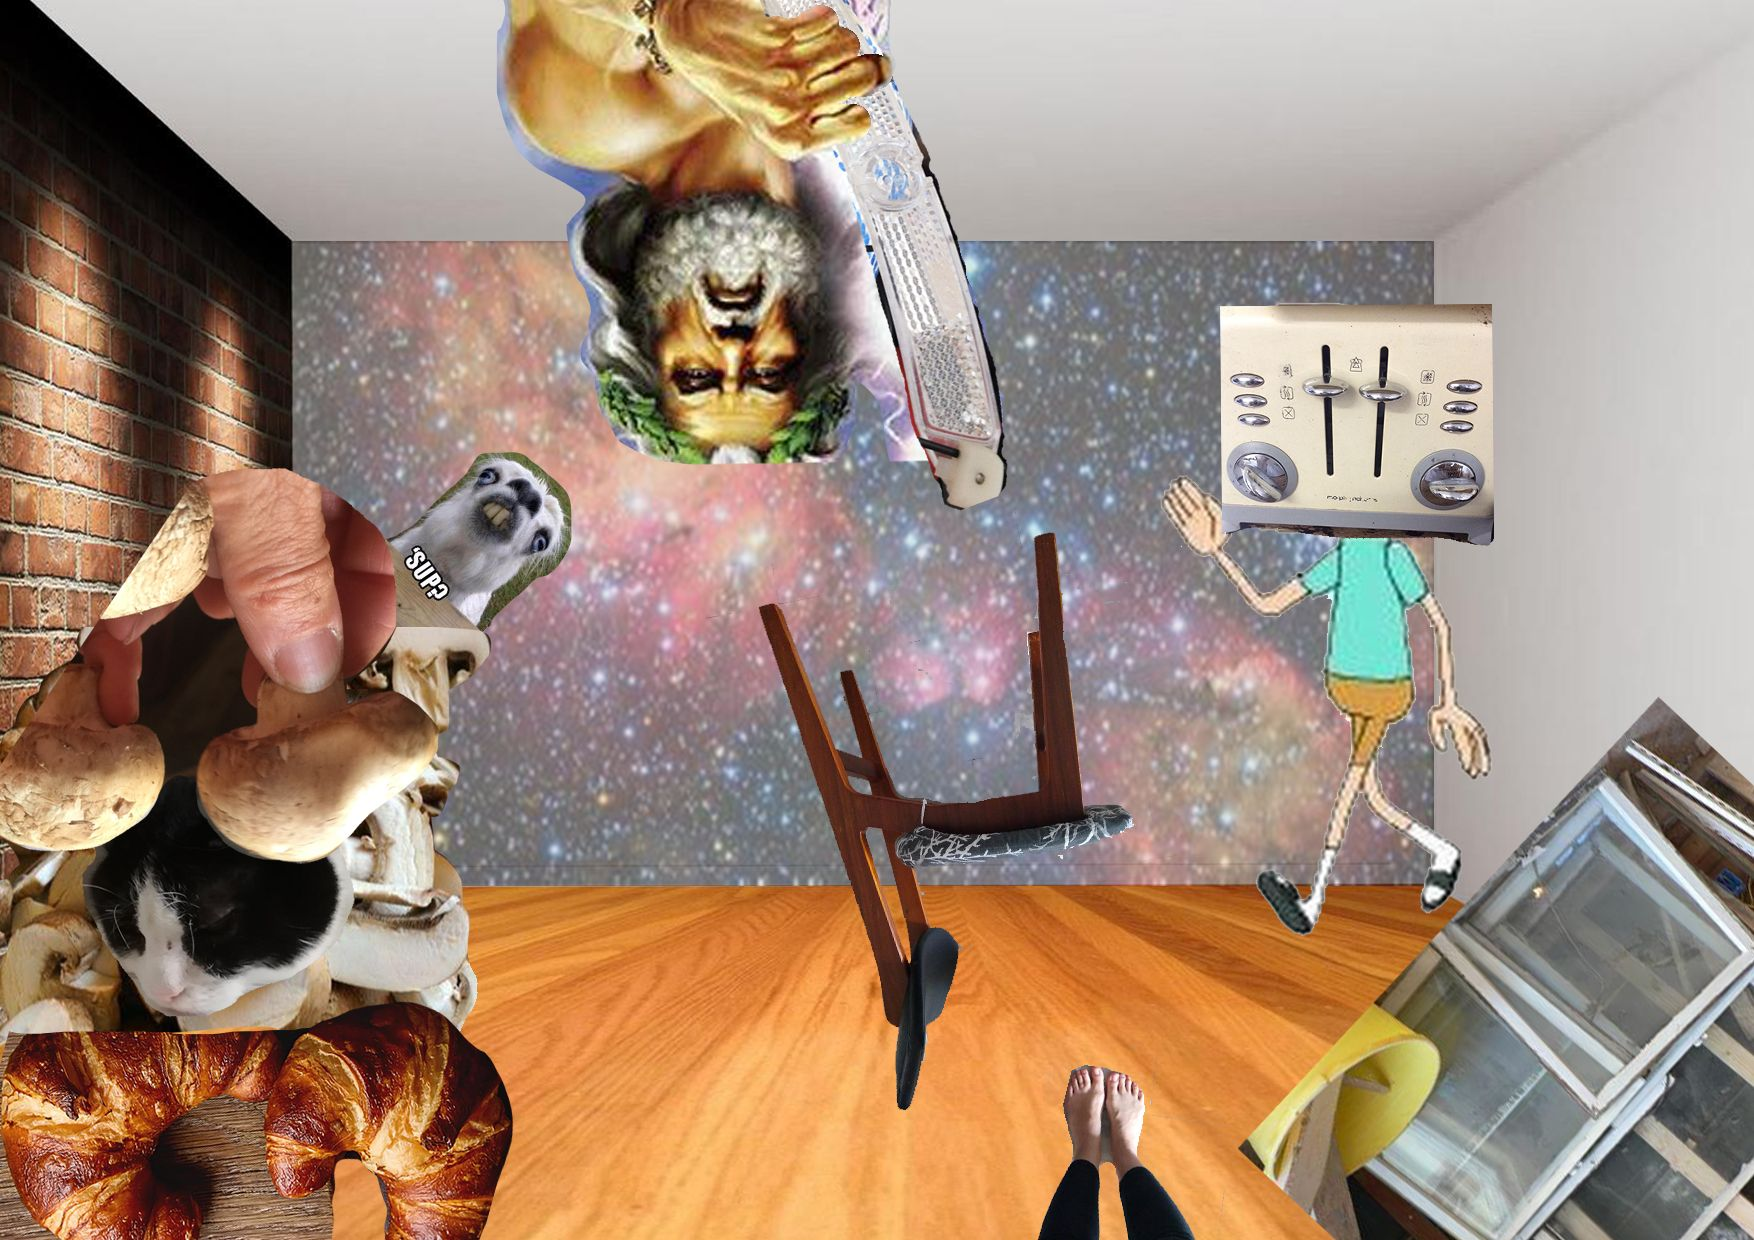 Collage showing a chair, some croissants, a cat, some mushrooms, some windows, Zeus, the drawing of a boy with a toaster instead of his head